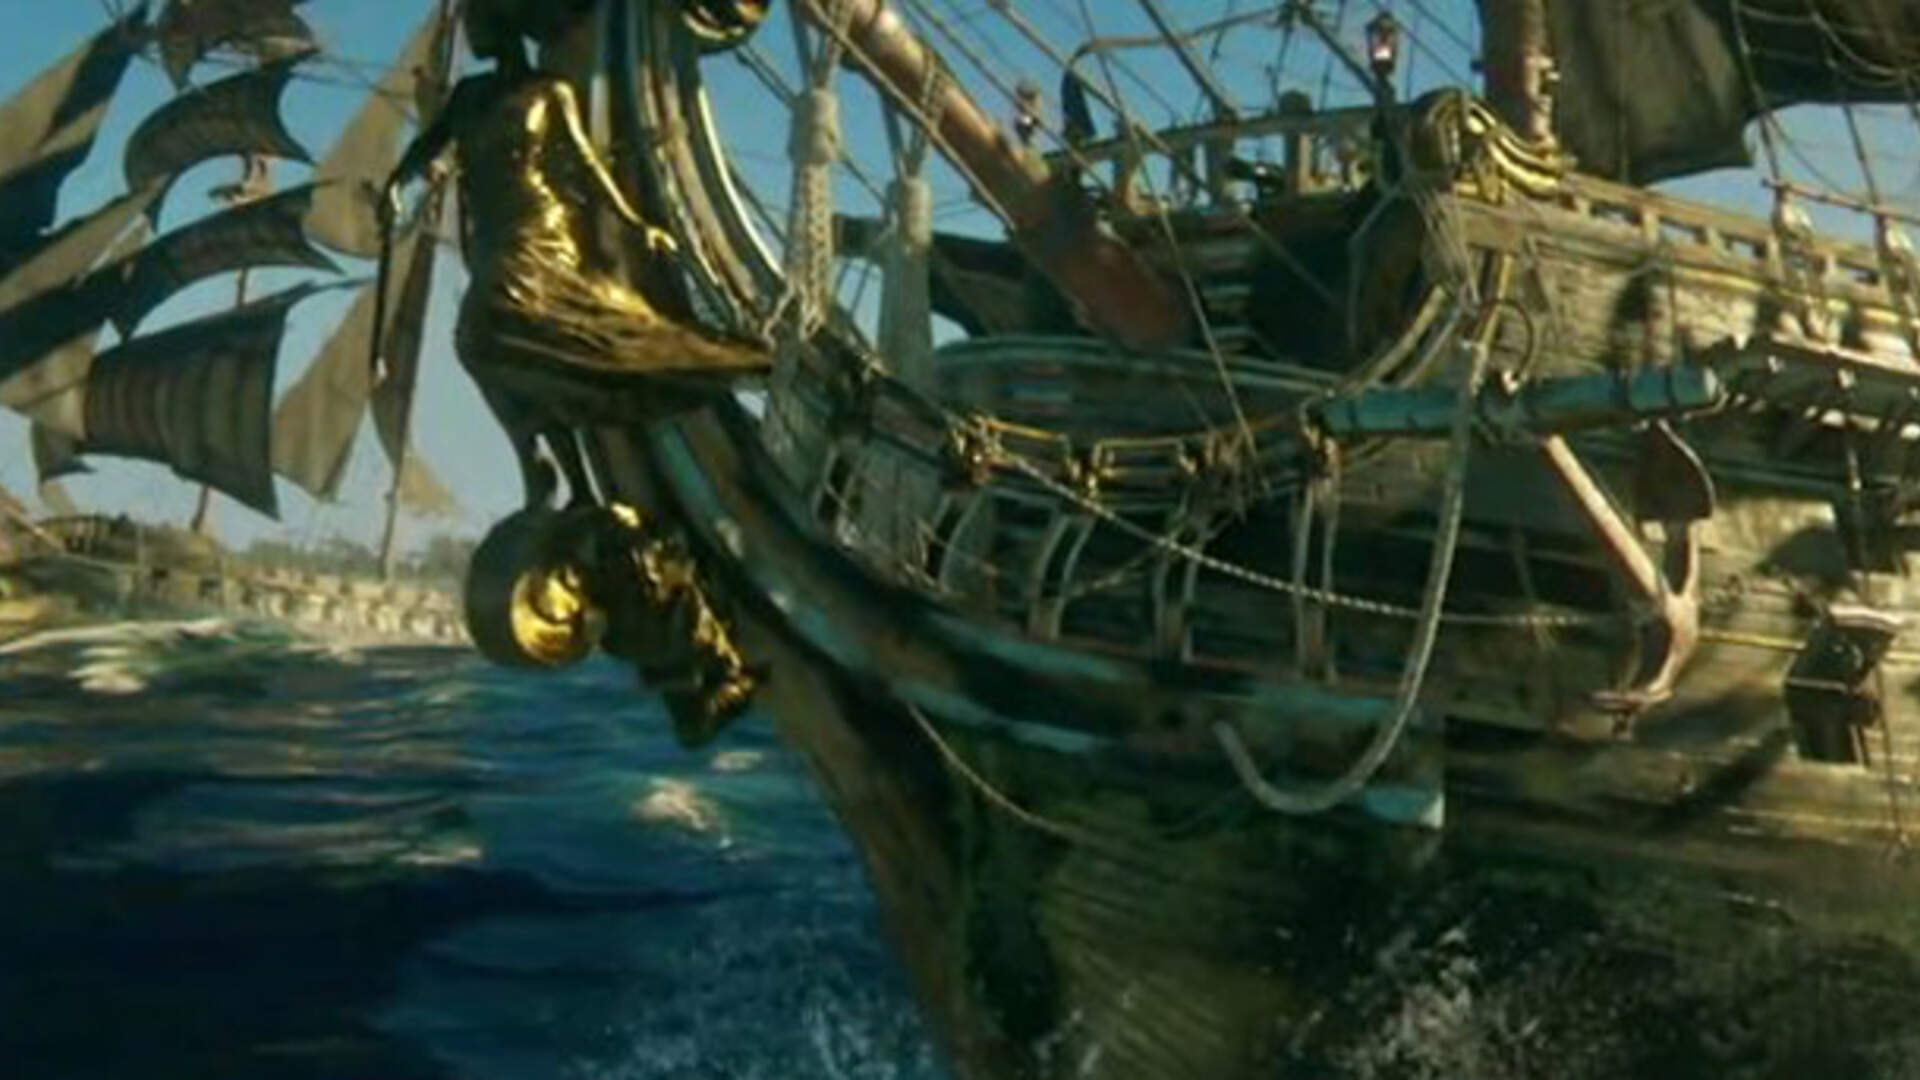 Skull and Bones Release Date, E3 2018 Gameplay, Beta, Ship Types - Everything We Know